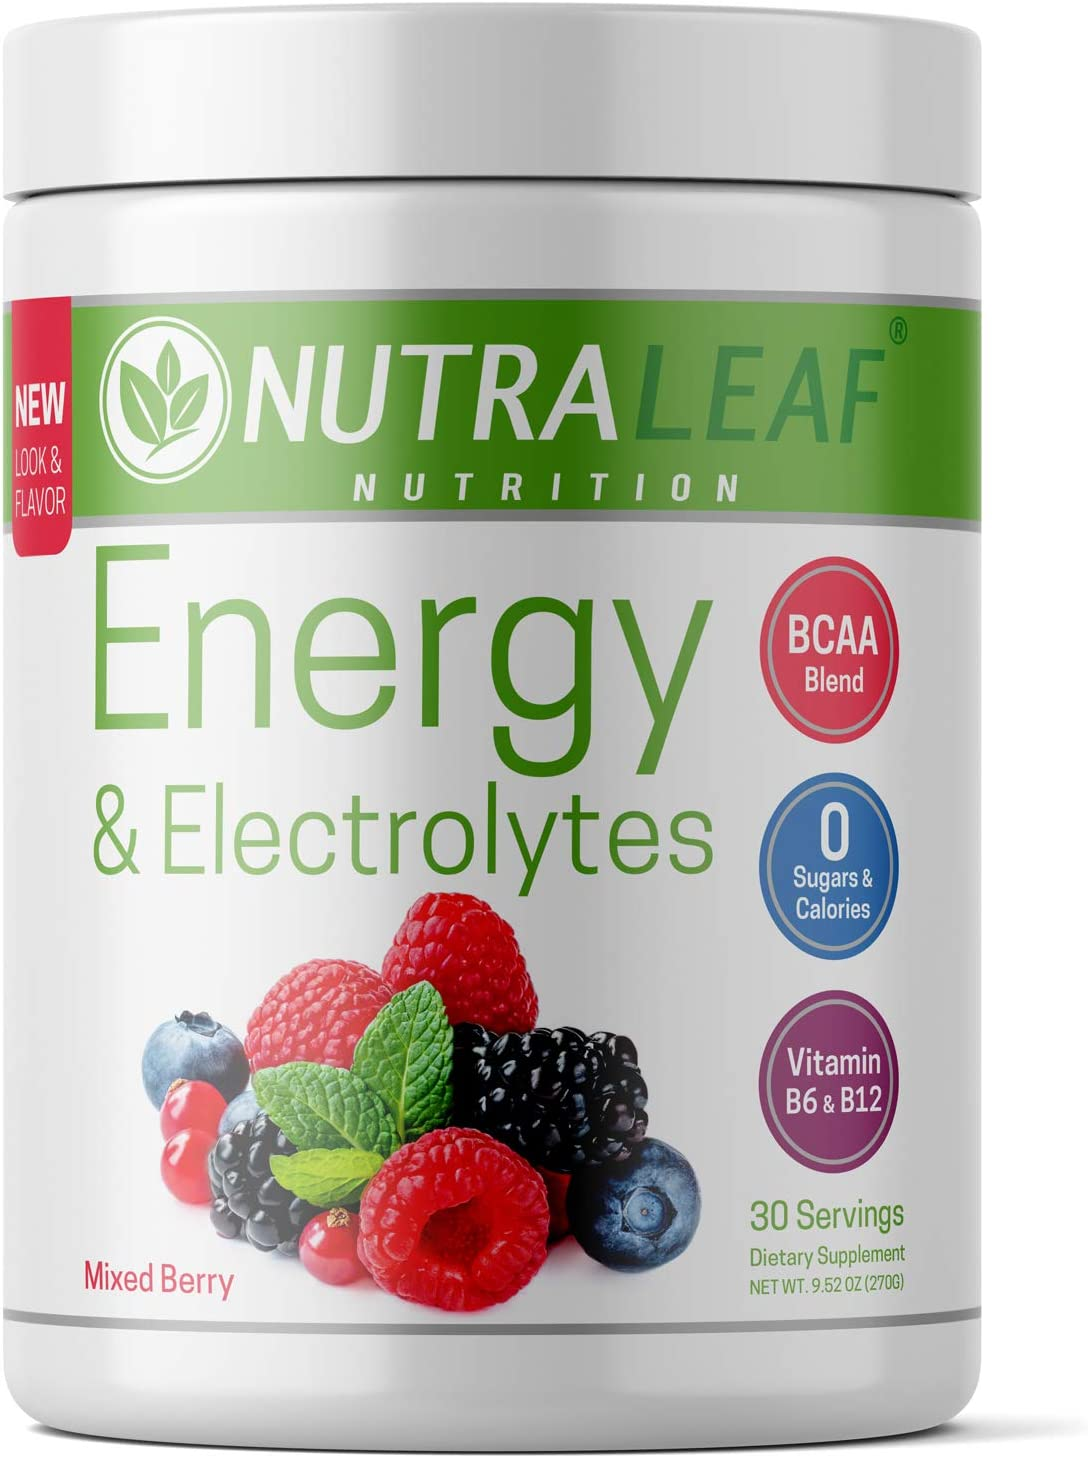 NutraLeaf Energy Electrolytes Vegan Pre-Workout BCAA Powder Drink with Caffeine Beta Alanine – Plant-Based, Keto-Friendly, All-Natural, Non-GMO, Gluten Sugar Free – Mixed Berry 30 Servings